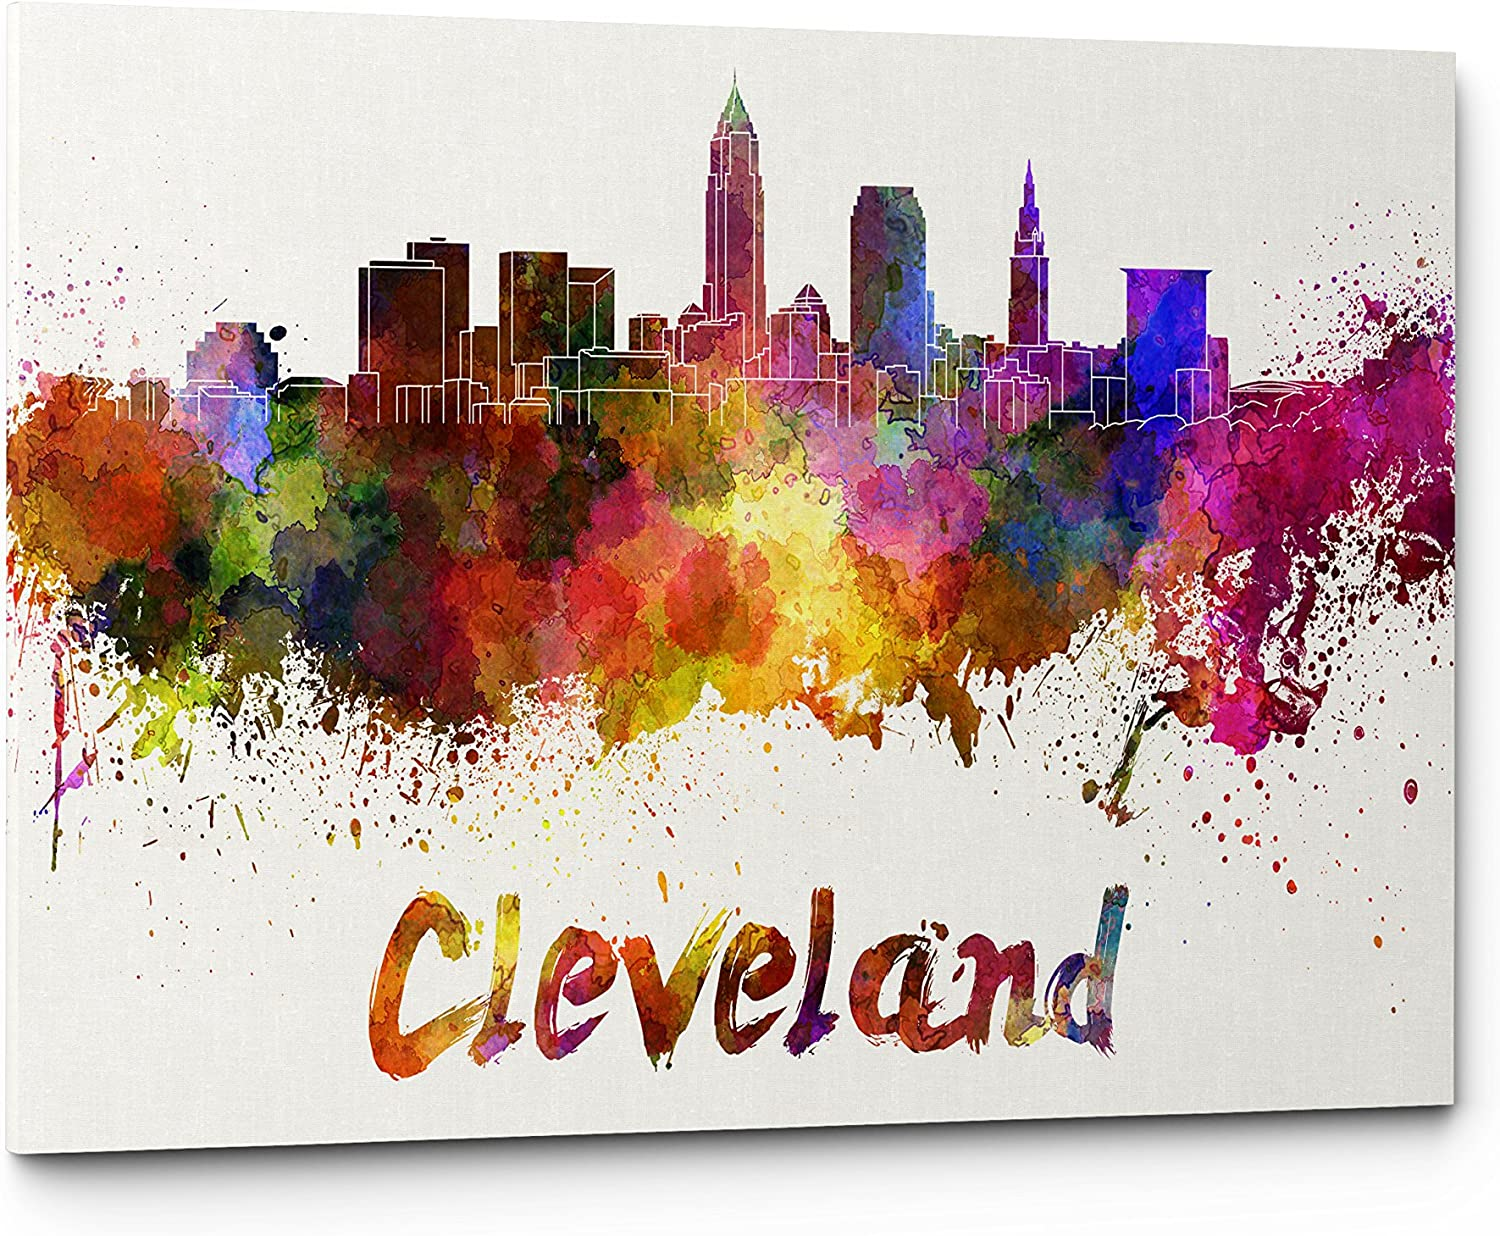 High Quality Watercolor Cleveland City Skyline Canvas Wall Art Prints, Modern Abstract CityScape Wall Art Print, Gallery Wrapped Giclee Canvas Art, Home Decor, Office Decor - Ready To Hang (Cleveland)